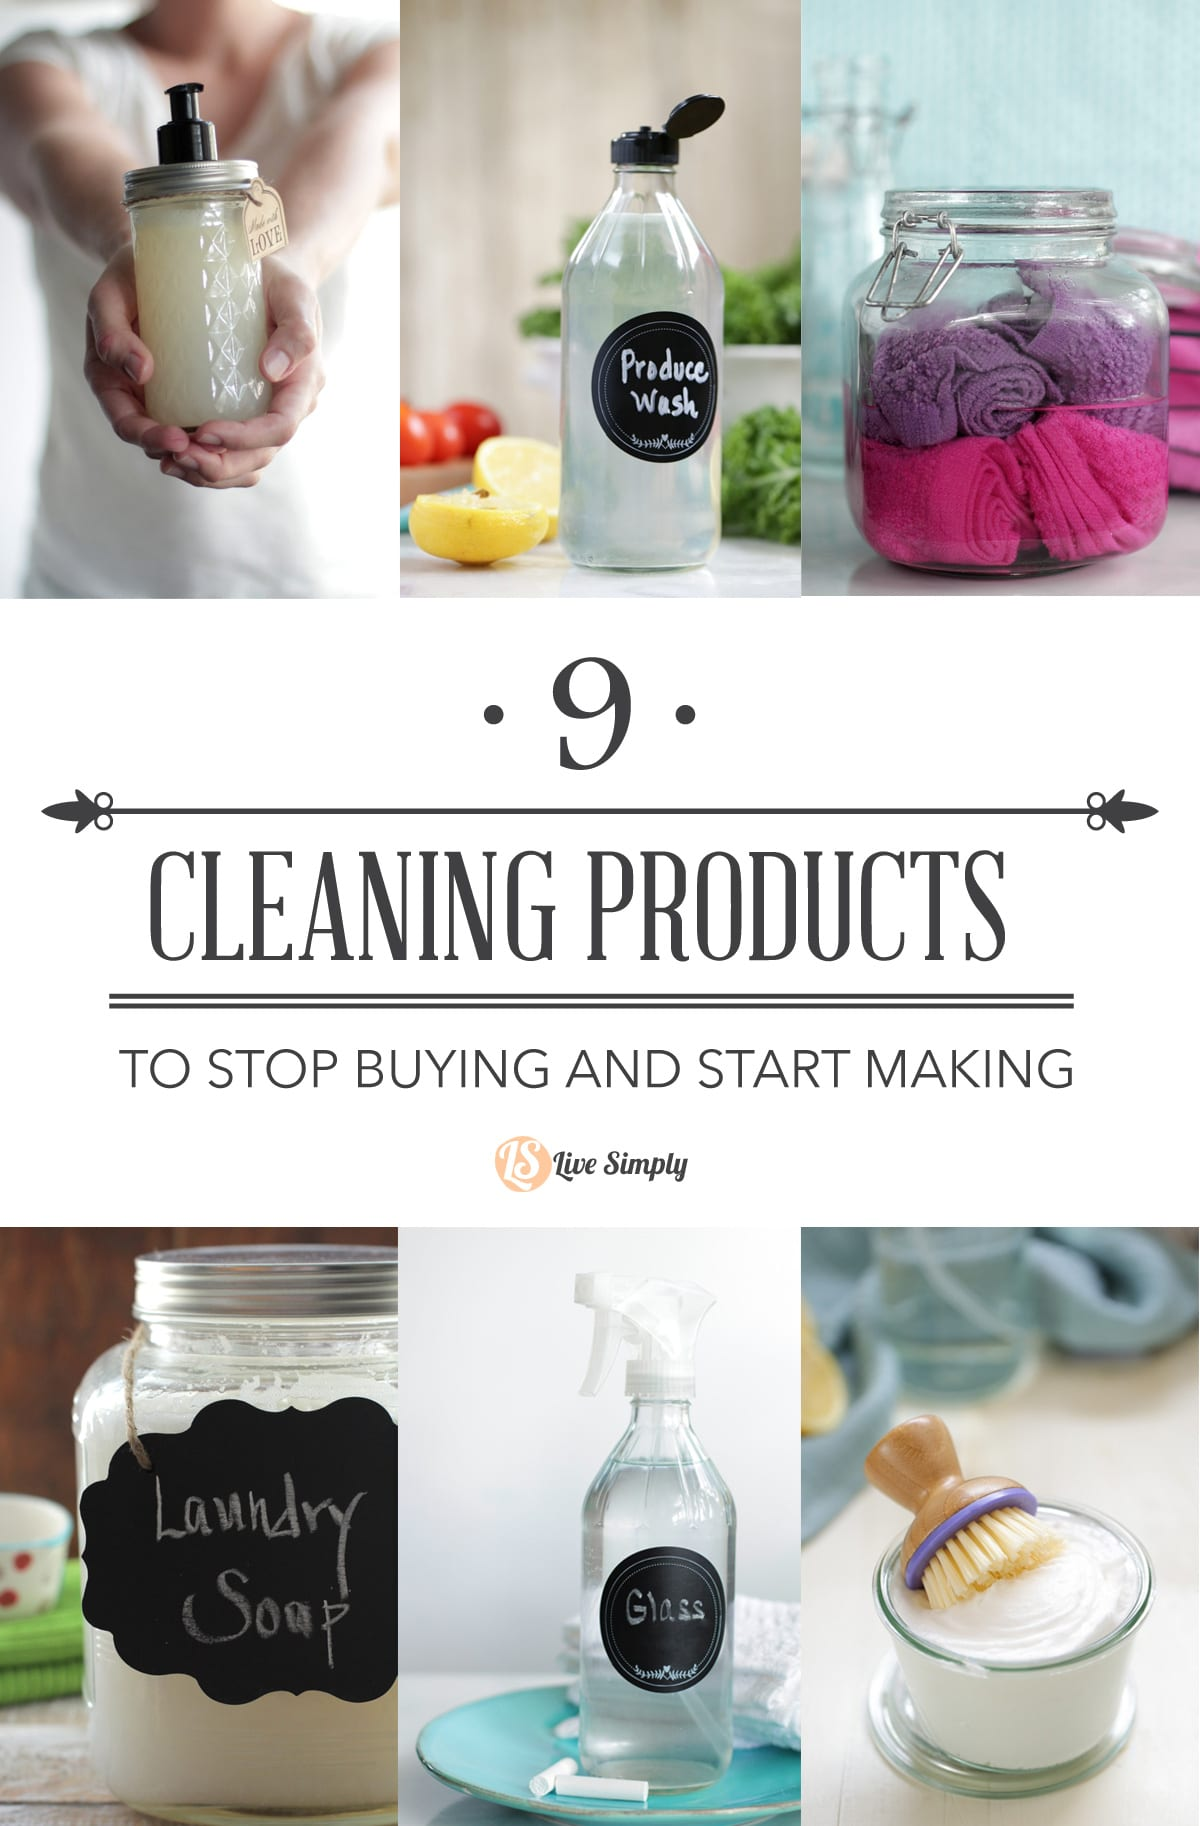 9 Cleaning Products to Stop Buying and Start Making - Live Simply